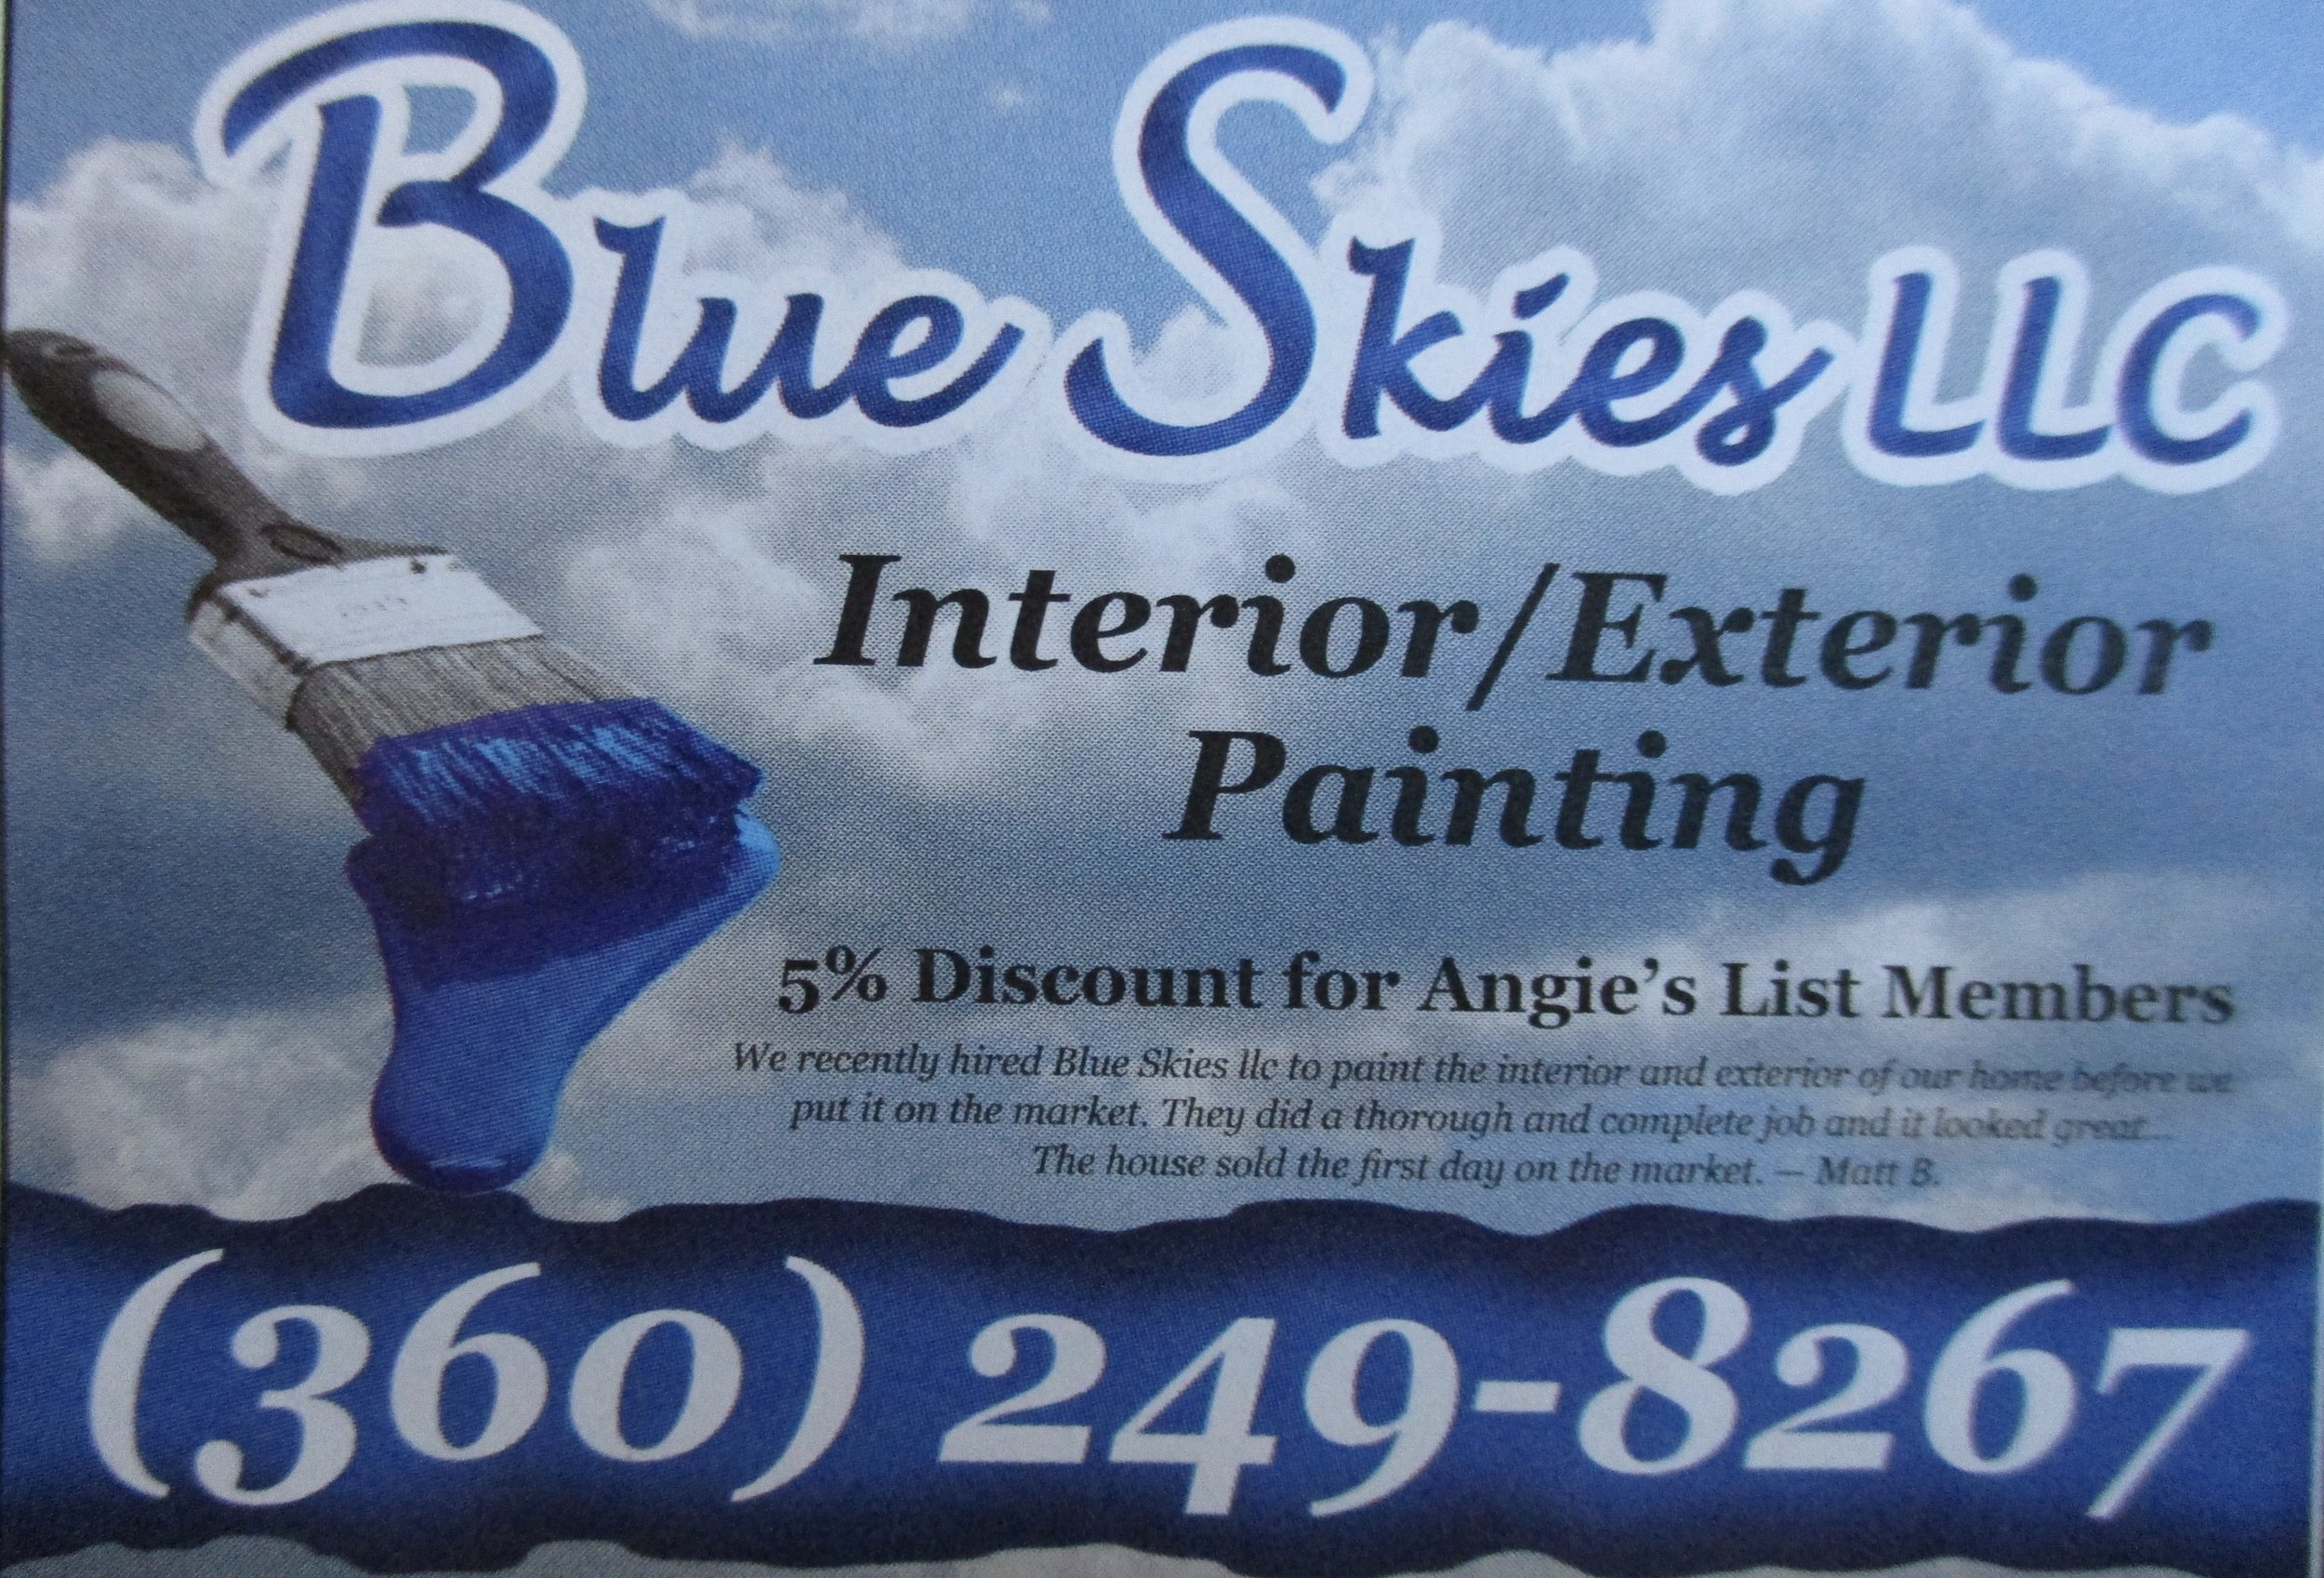 Why all the clouds if it's Blue Skies LLC? Because the sky without clouds is, dare I say, boring. As is a business card. You'll notice clouds used frequently in print media as a backdrop for book or magazine articles even if the subject is not clouds.